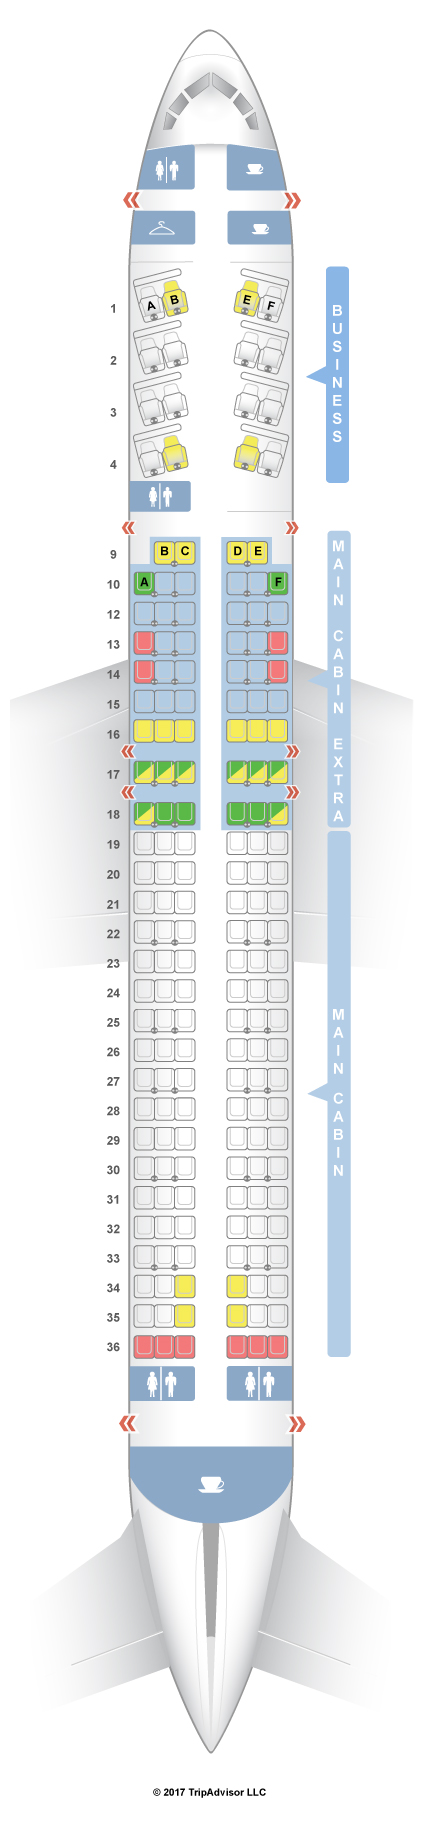 American Airlines 757 200 Seating Chart